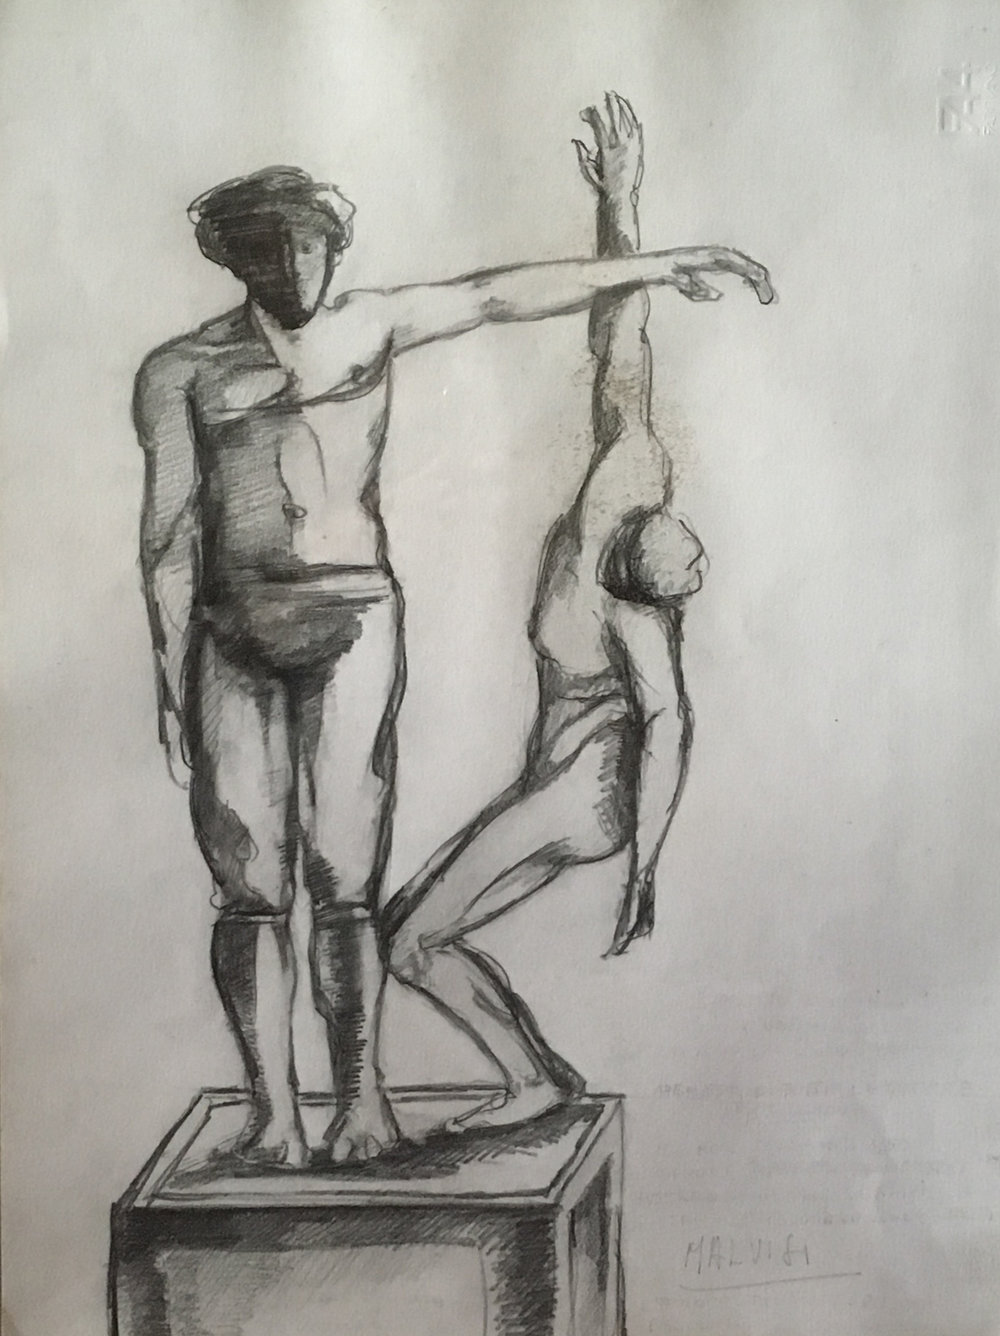 <b>Idea for a monument to the death</b><br> (Orig. Idea per un monumento ai caduti) <br> 1998 Pencil on cardboard <br> cm 34 x 50